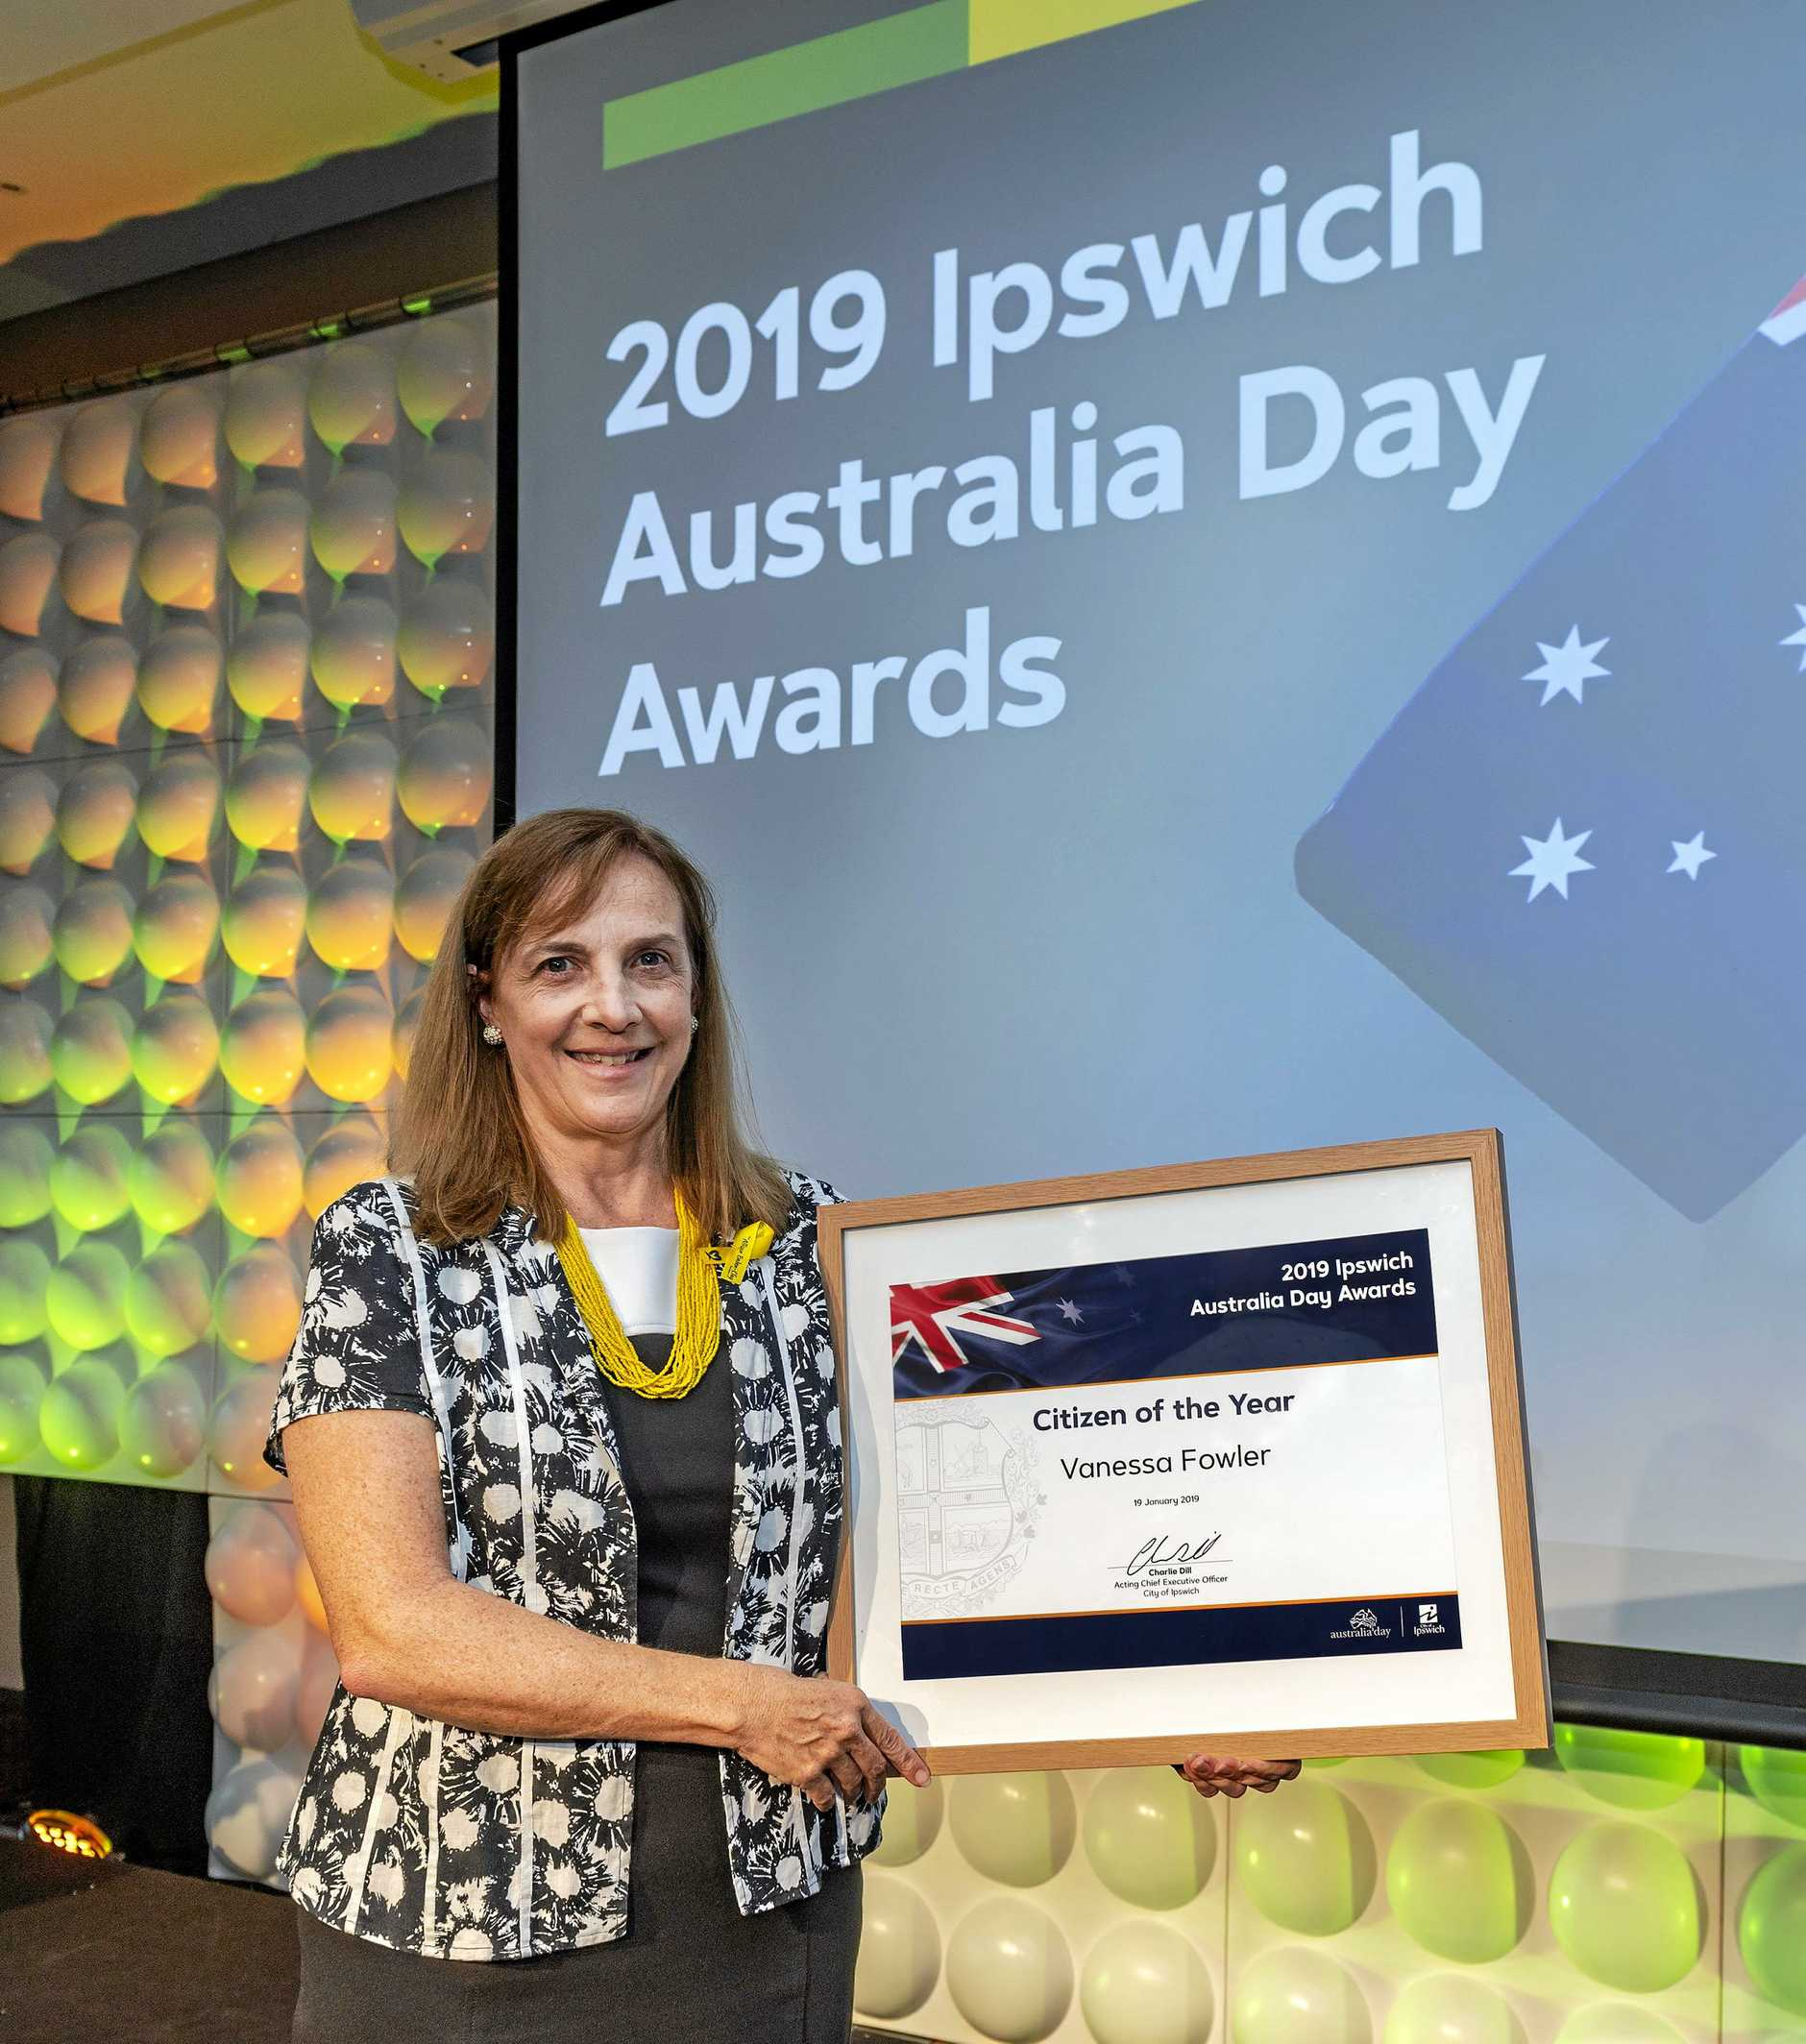 CHAMPION: For her work with the Allison Baden-Clay Foundation, Vanessa Fowler was named Citizen of the Year at Ipswich City Council's Australia Day Awards.